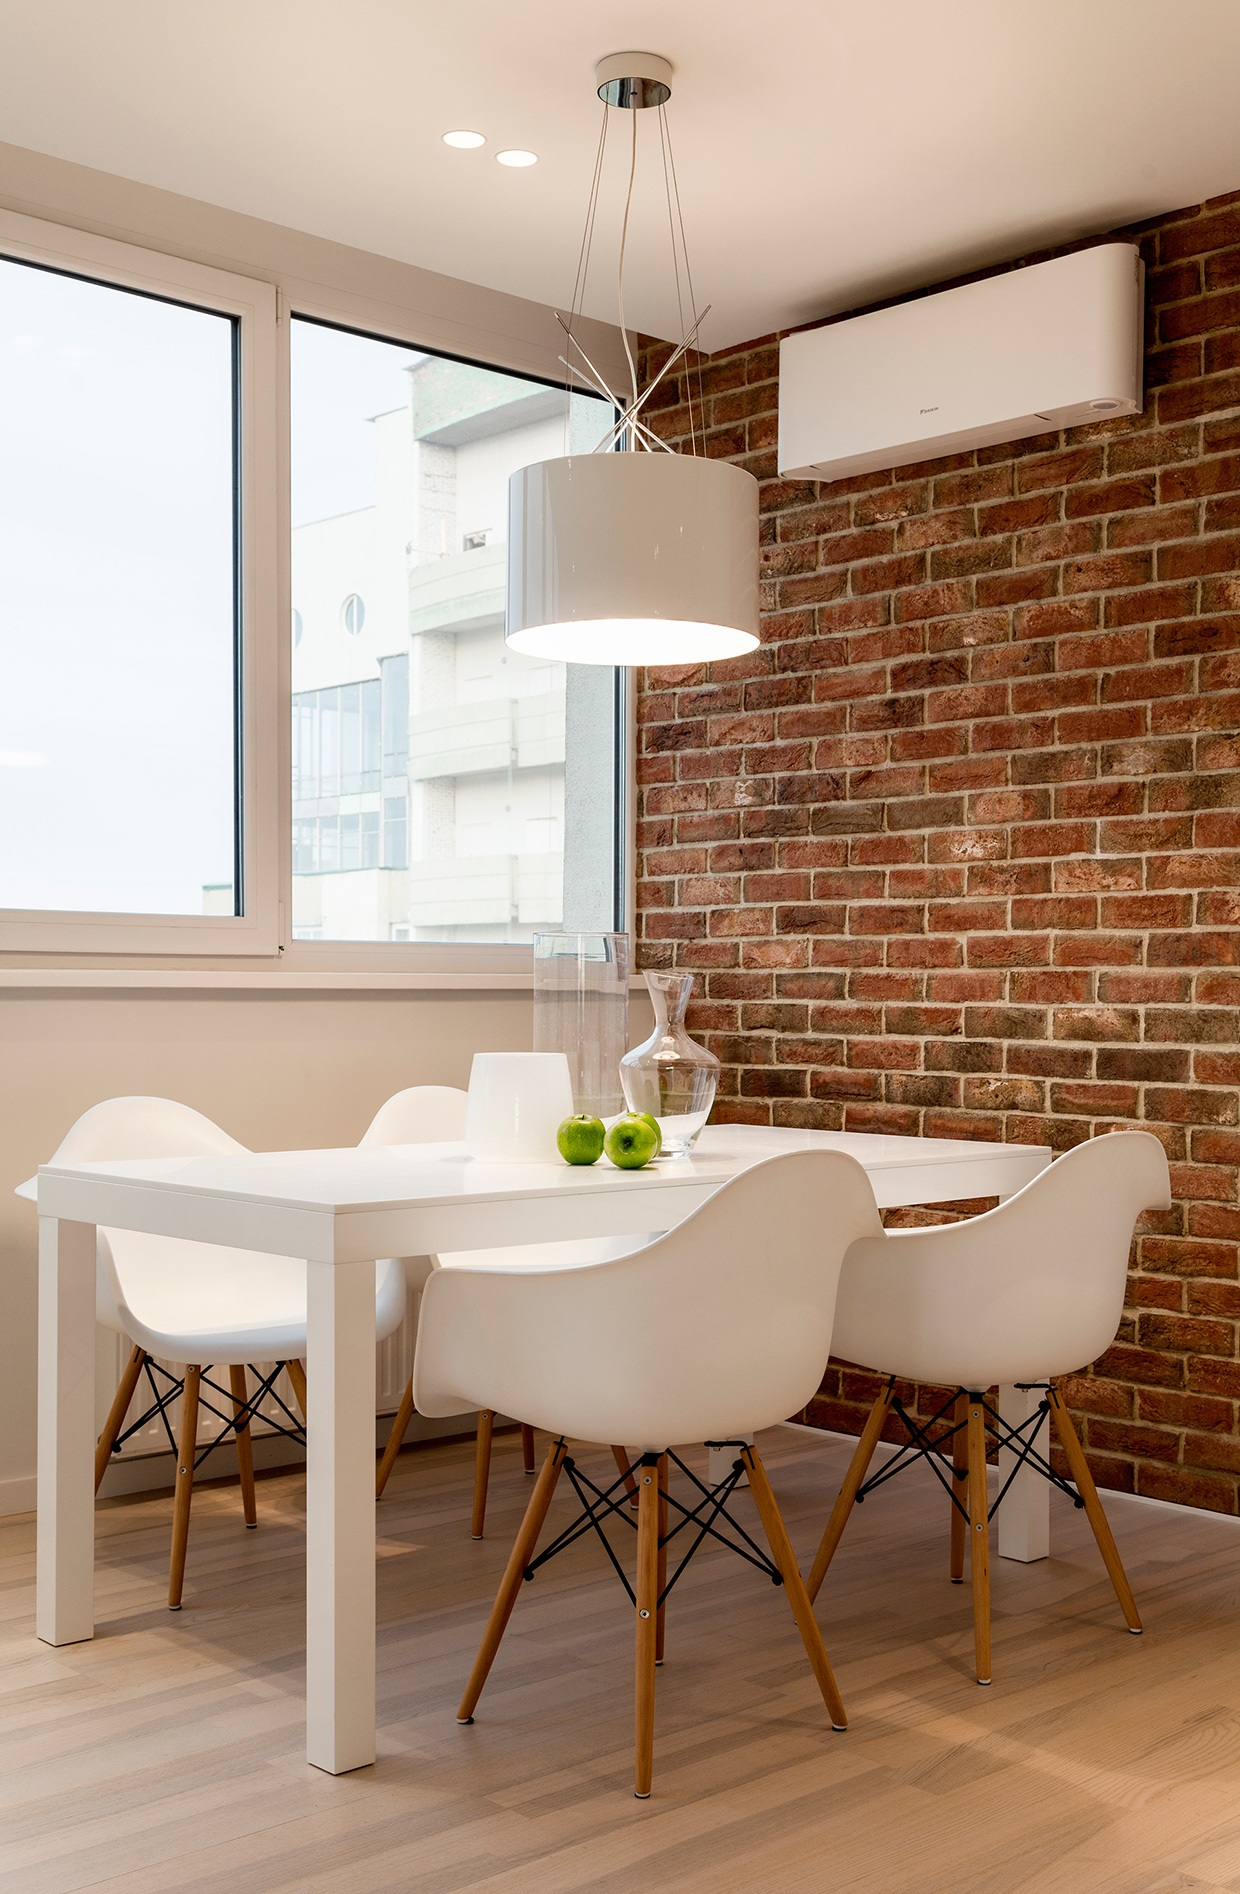 Exposed Brick Design - 3 sparkling apartments that shine with wonderful white